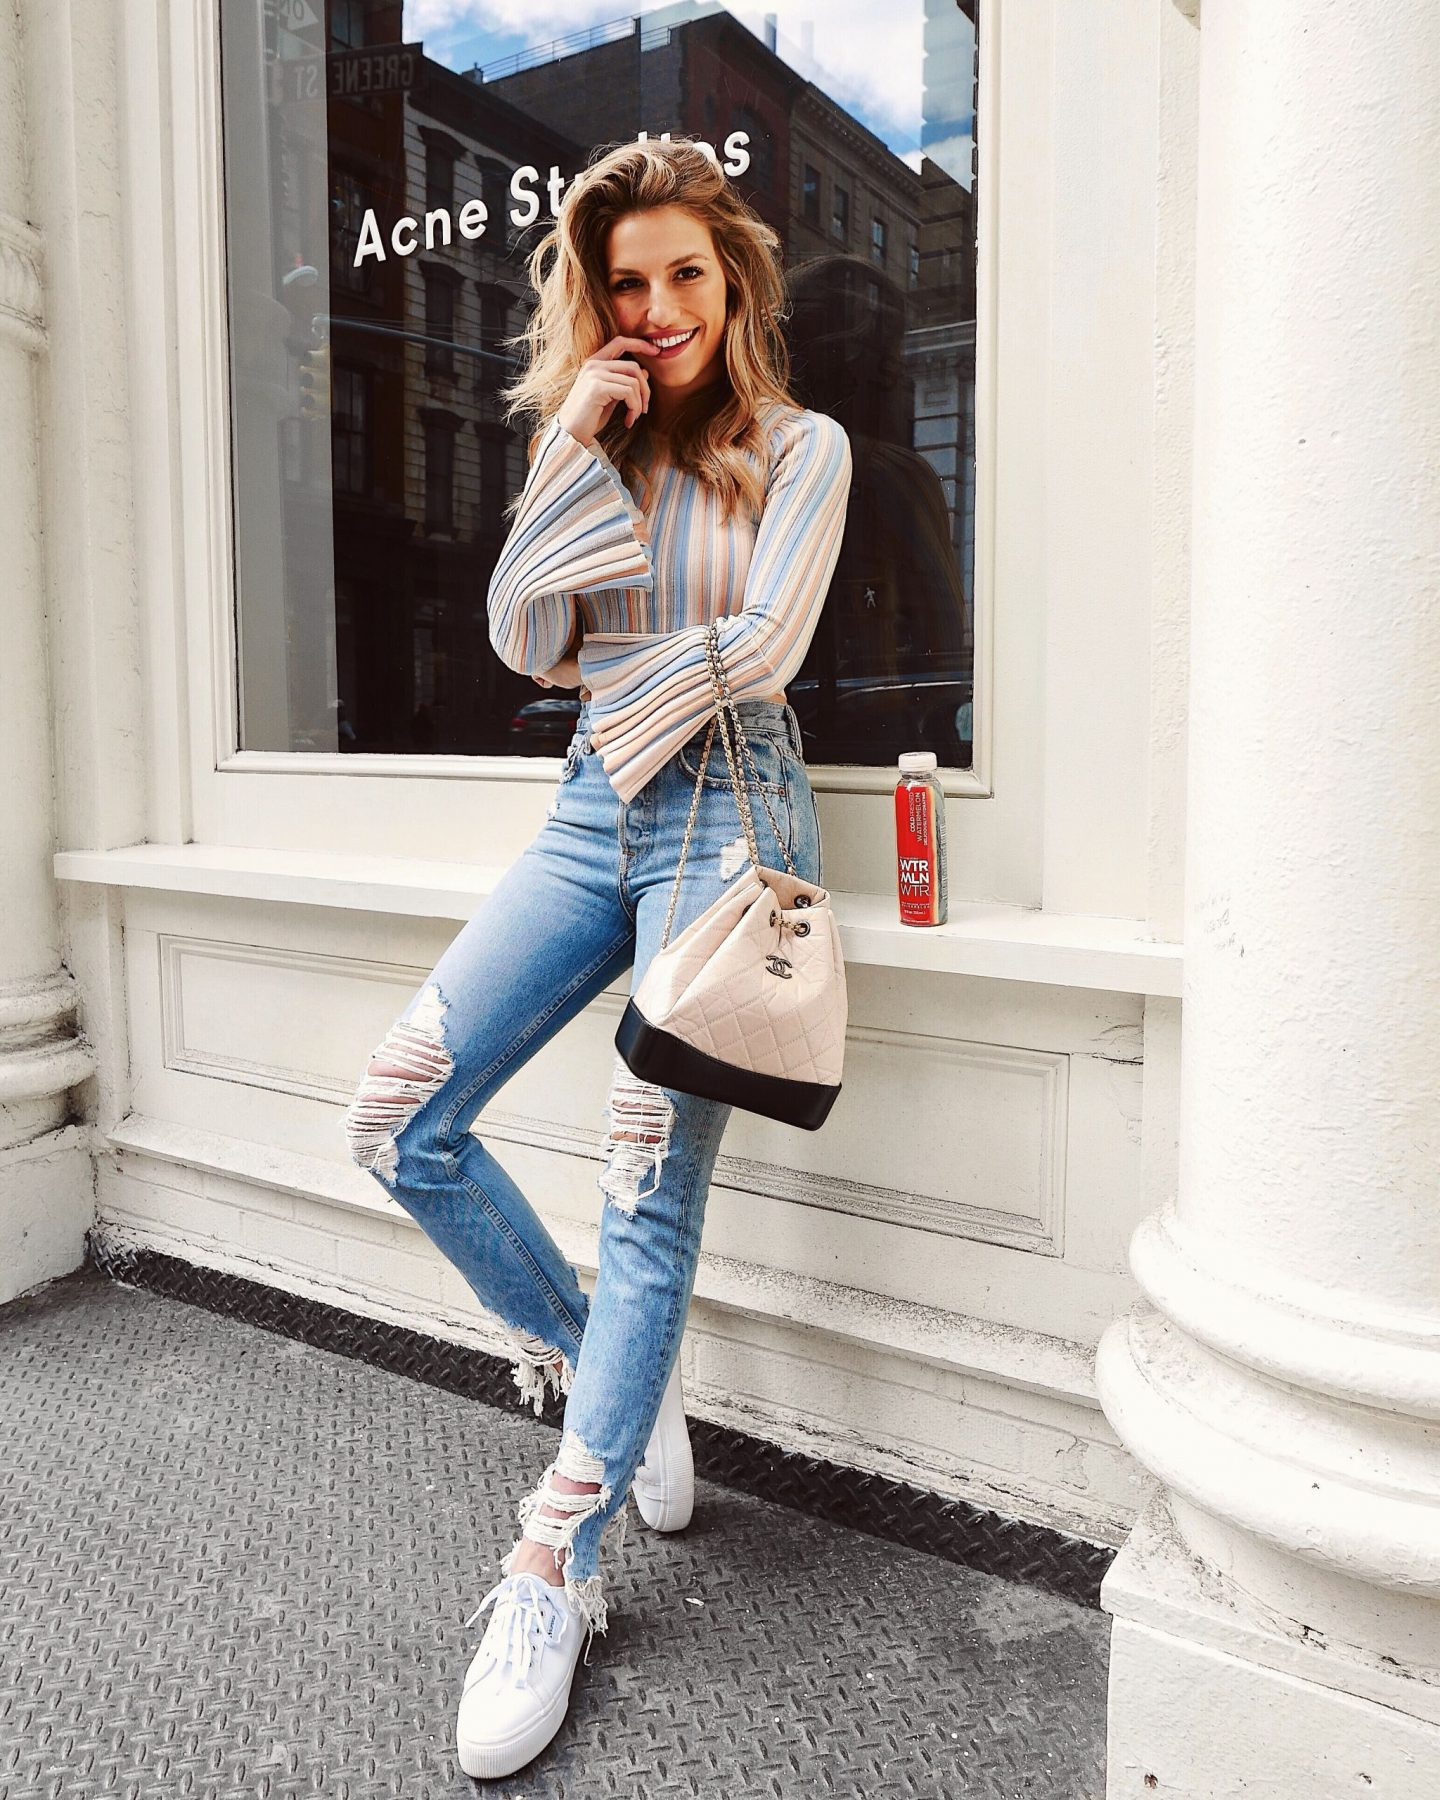 Cassandra DiMicco, Cass DiMicco, Dressed For Dreams, NYC, New York City, New York, Street Style NYC, Street Style 2018, NYC Street Style Street Style Outfits, 2018 Trends, NYC Fashion Blogger, Distressed Jeans, Flare Sleeve Top, Chanel Backpack, Platform Sneakers